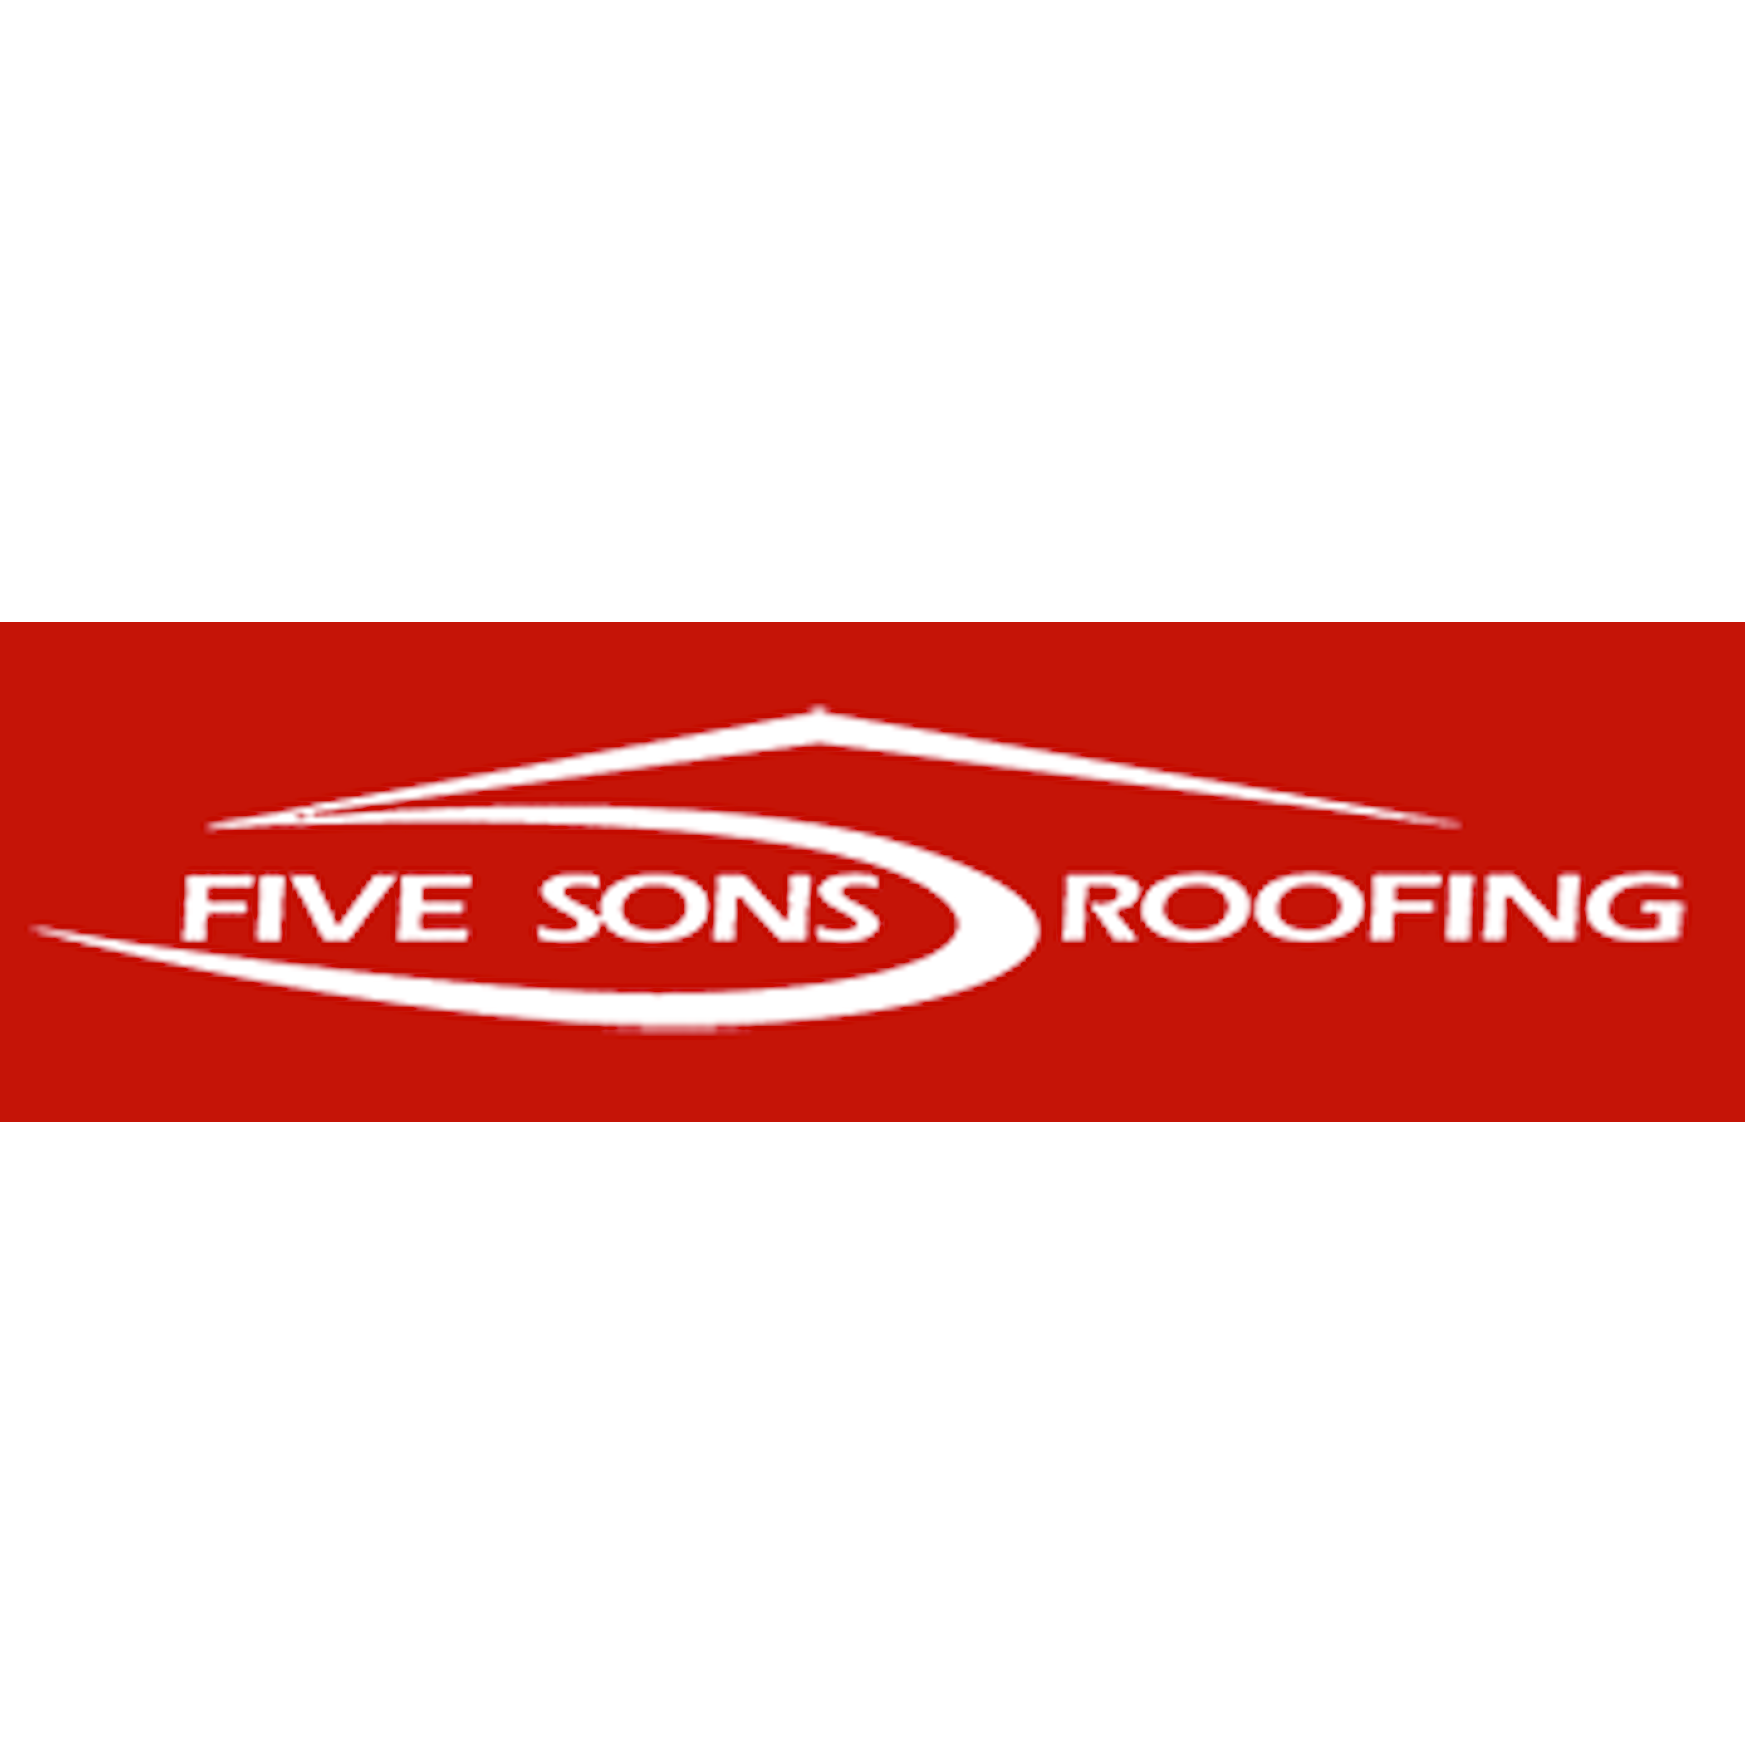 Five Sons Roofing